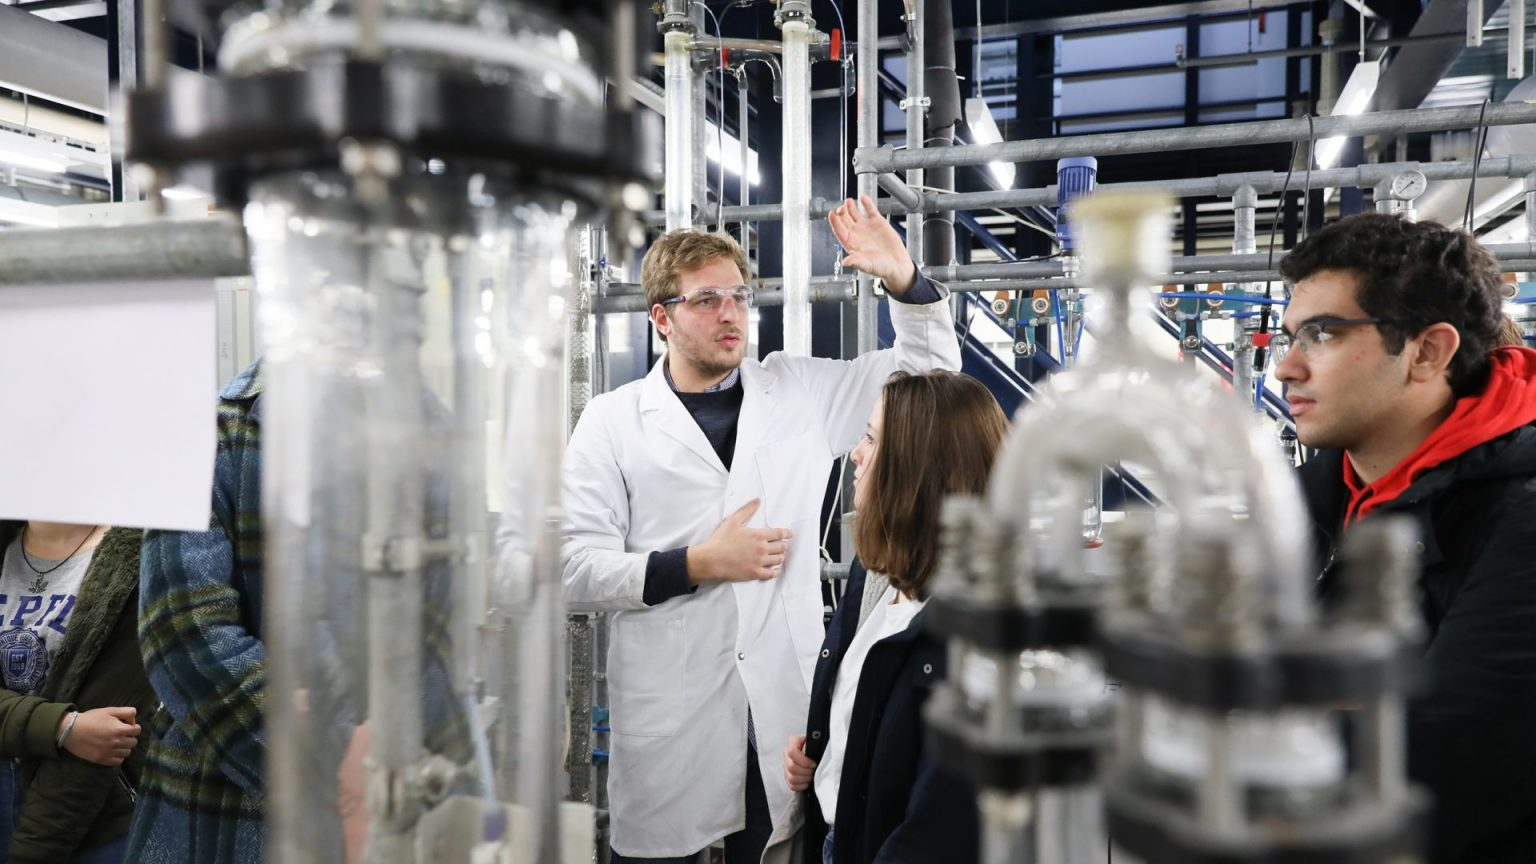 Doctoral Students' Salary – PHD | EPFL